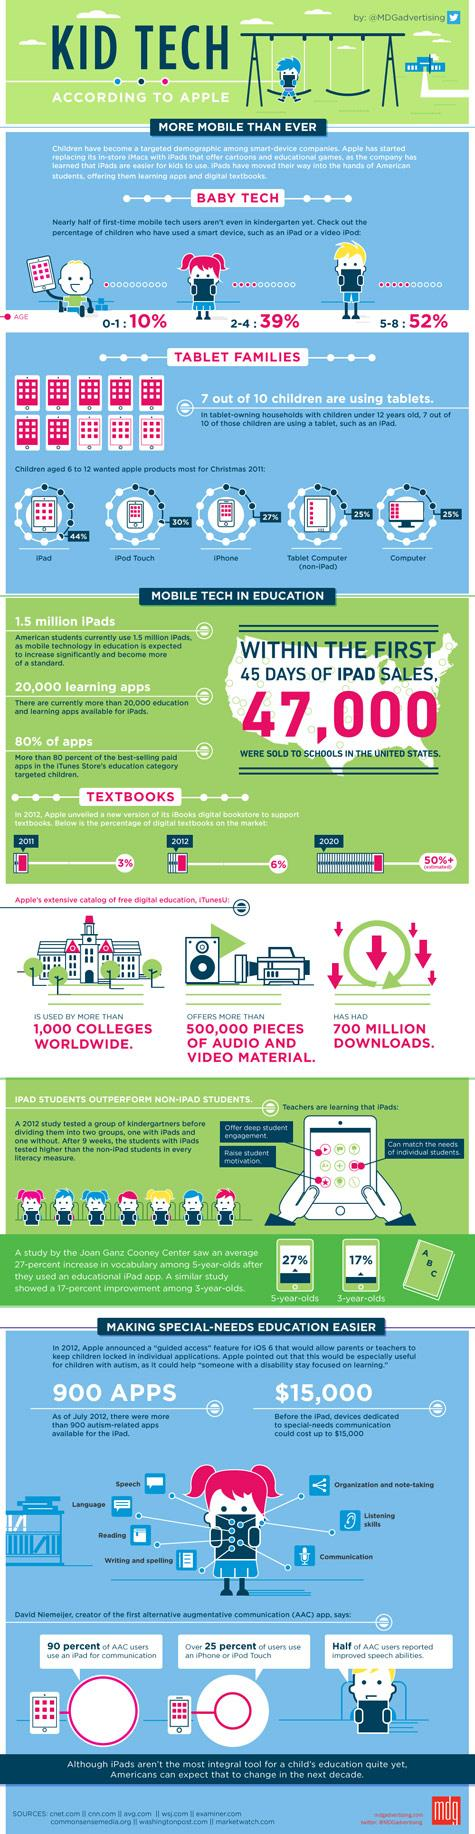 kid-tech-infographic